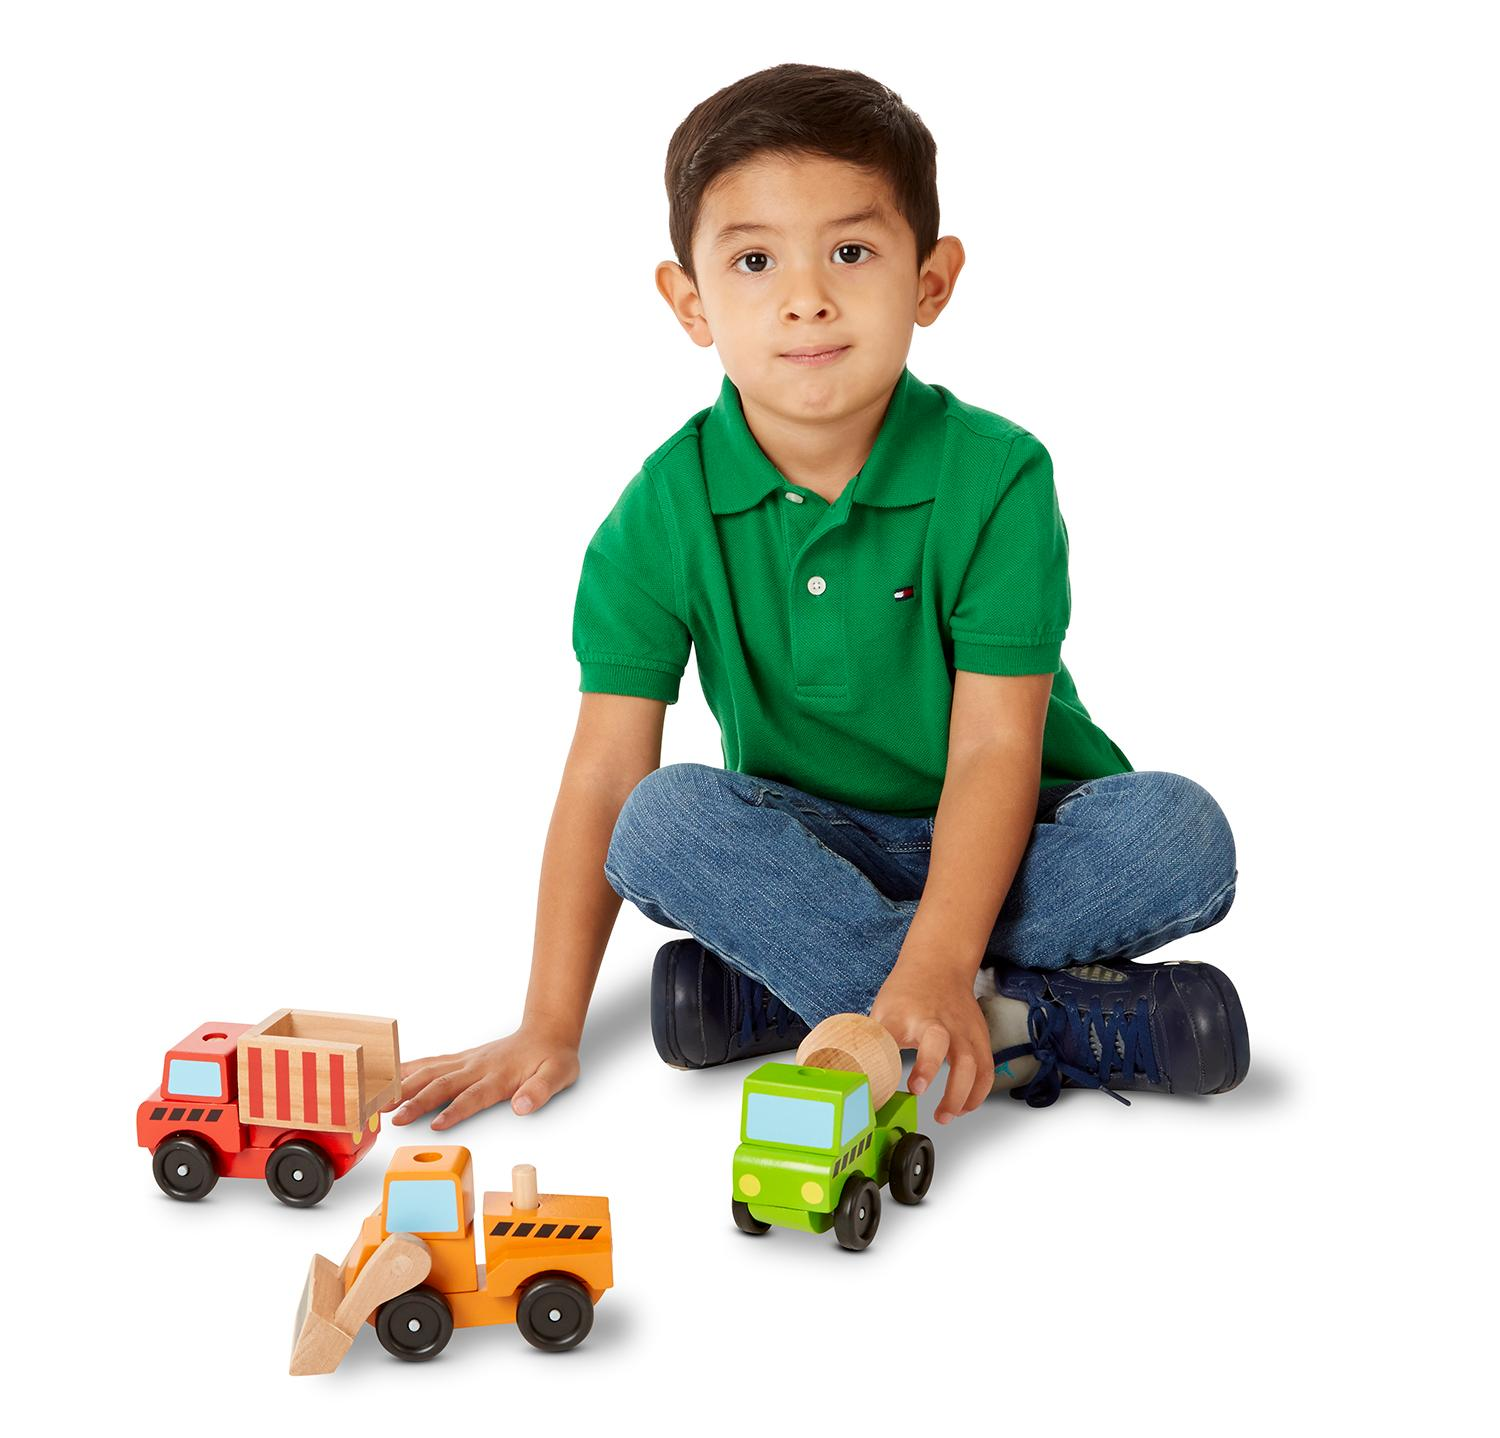 Construction Toys For Boys : Amazon melissa doug stacking construction vehicles